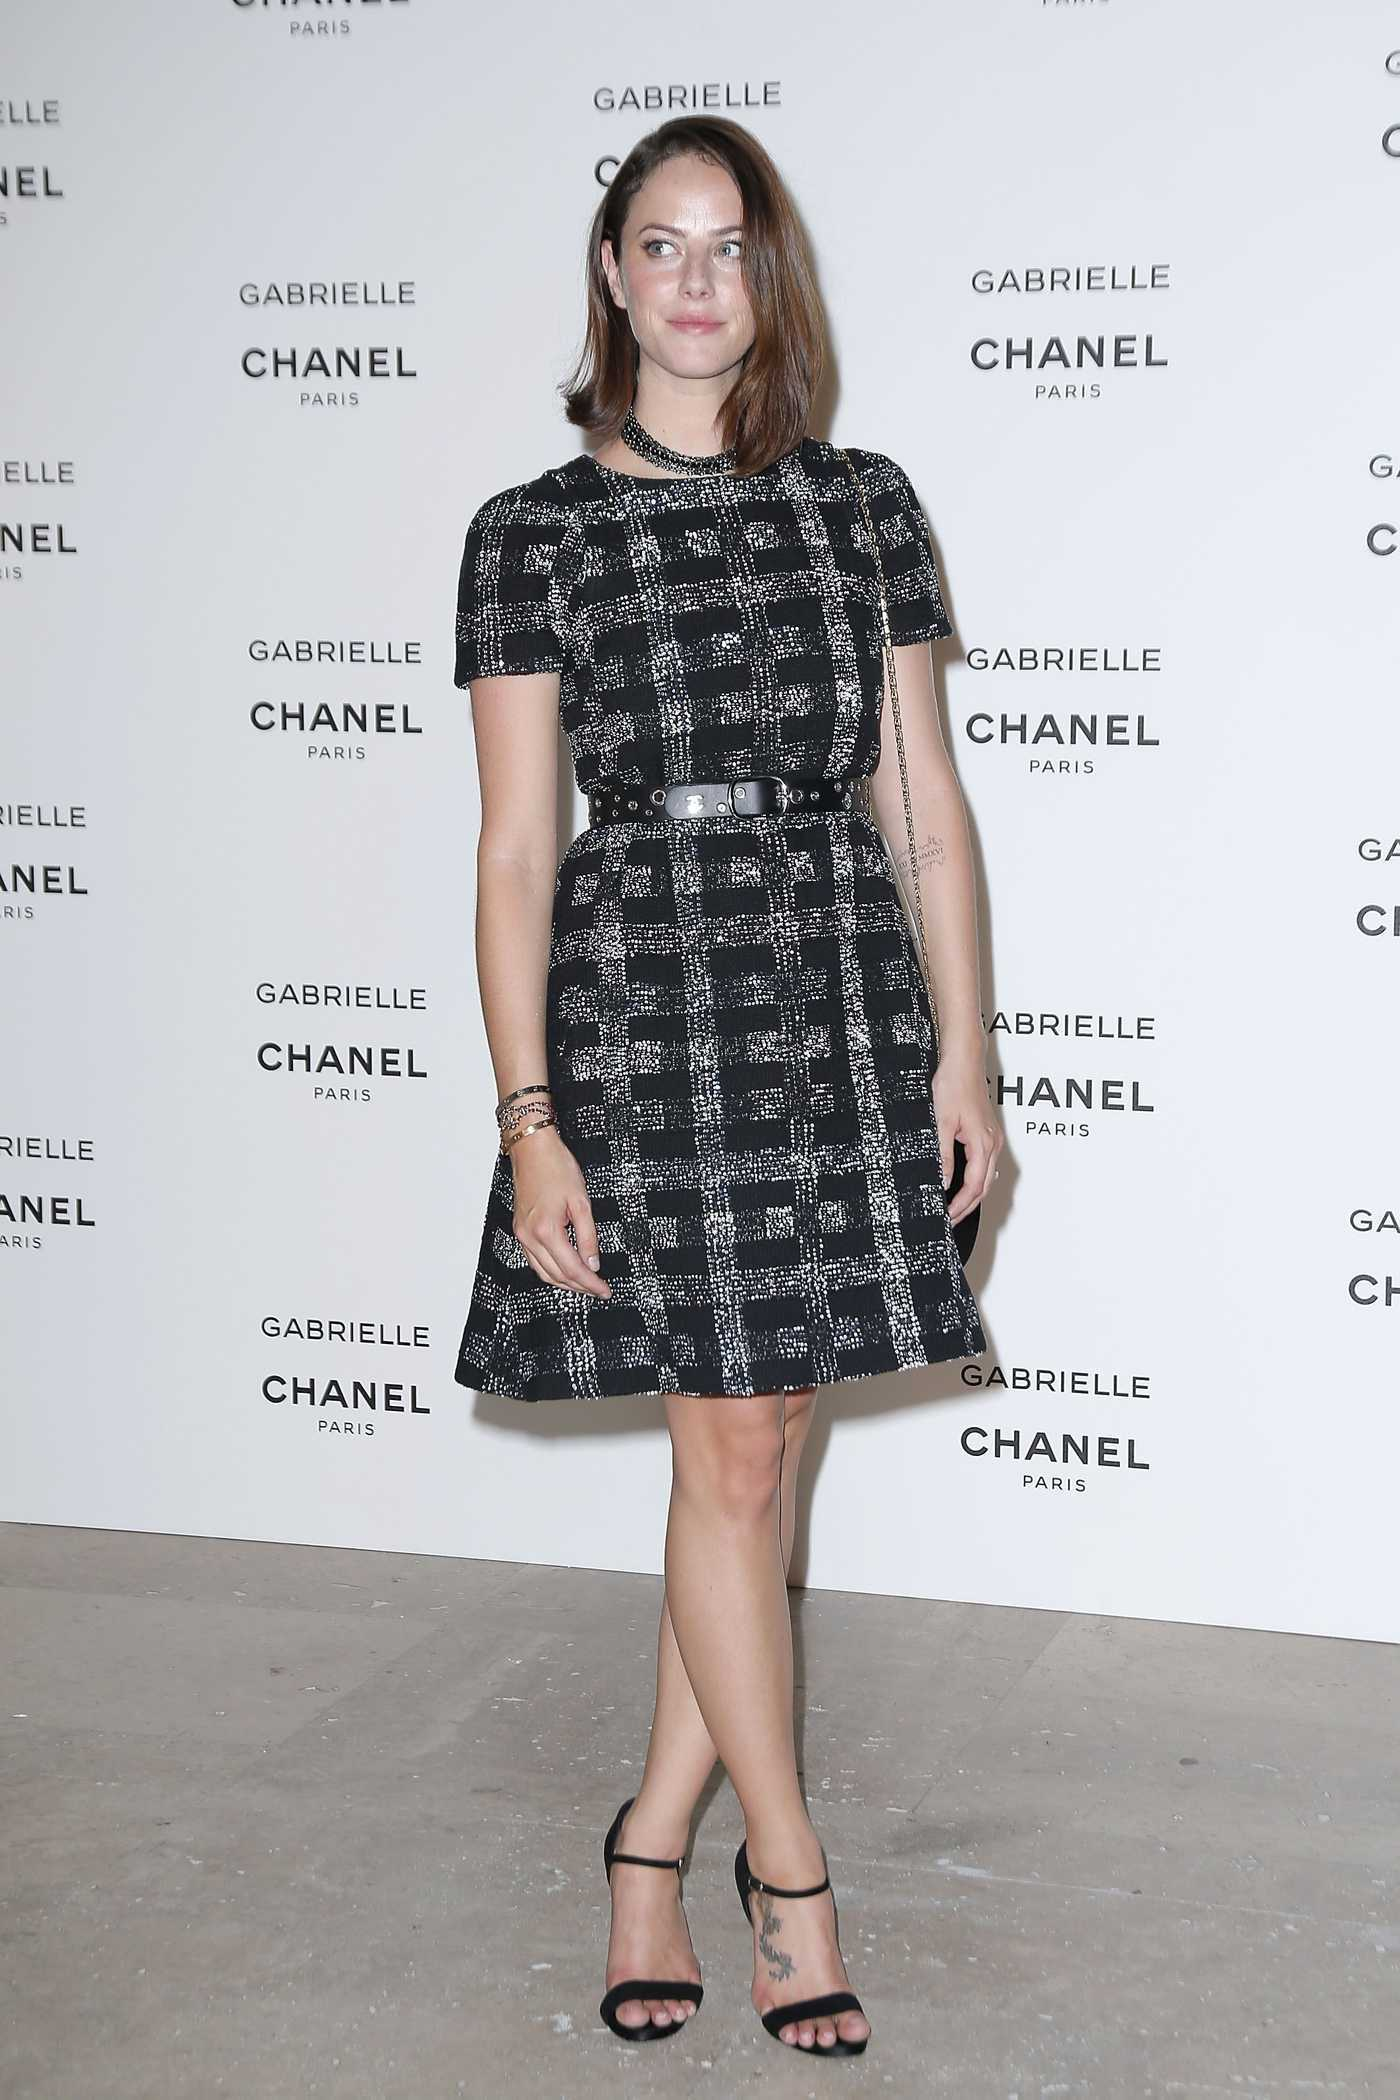 Kaya Scodelario Attends Chanel's New Perfume Gabrielle Launch Party in Paris 07/04/2017